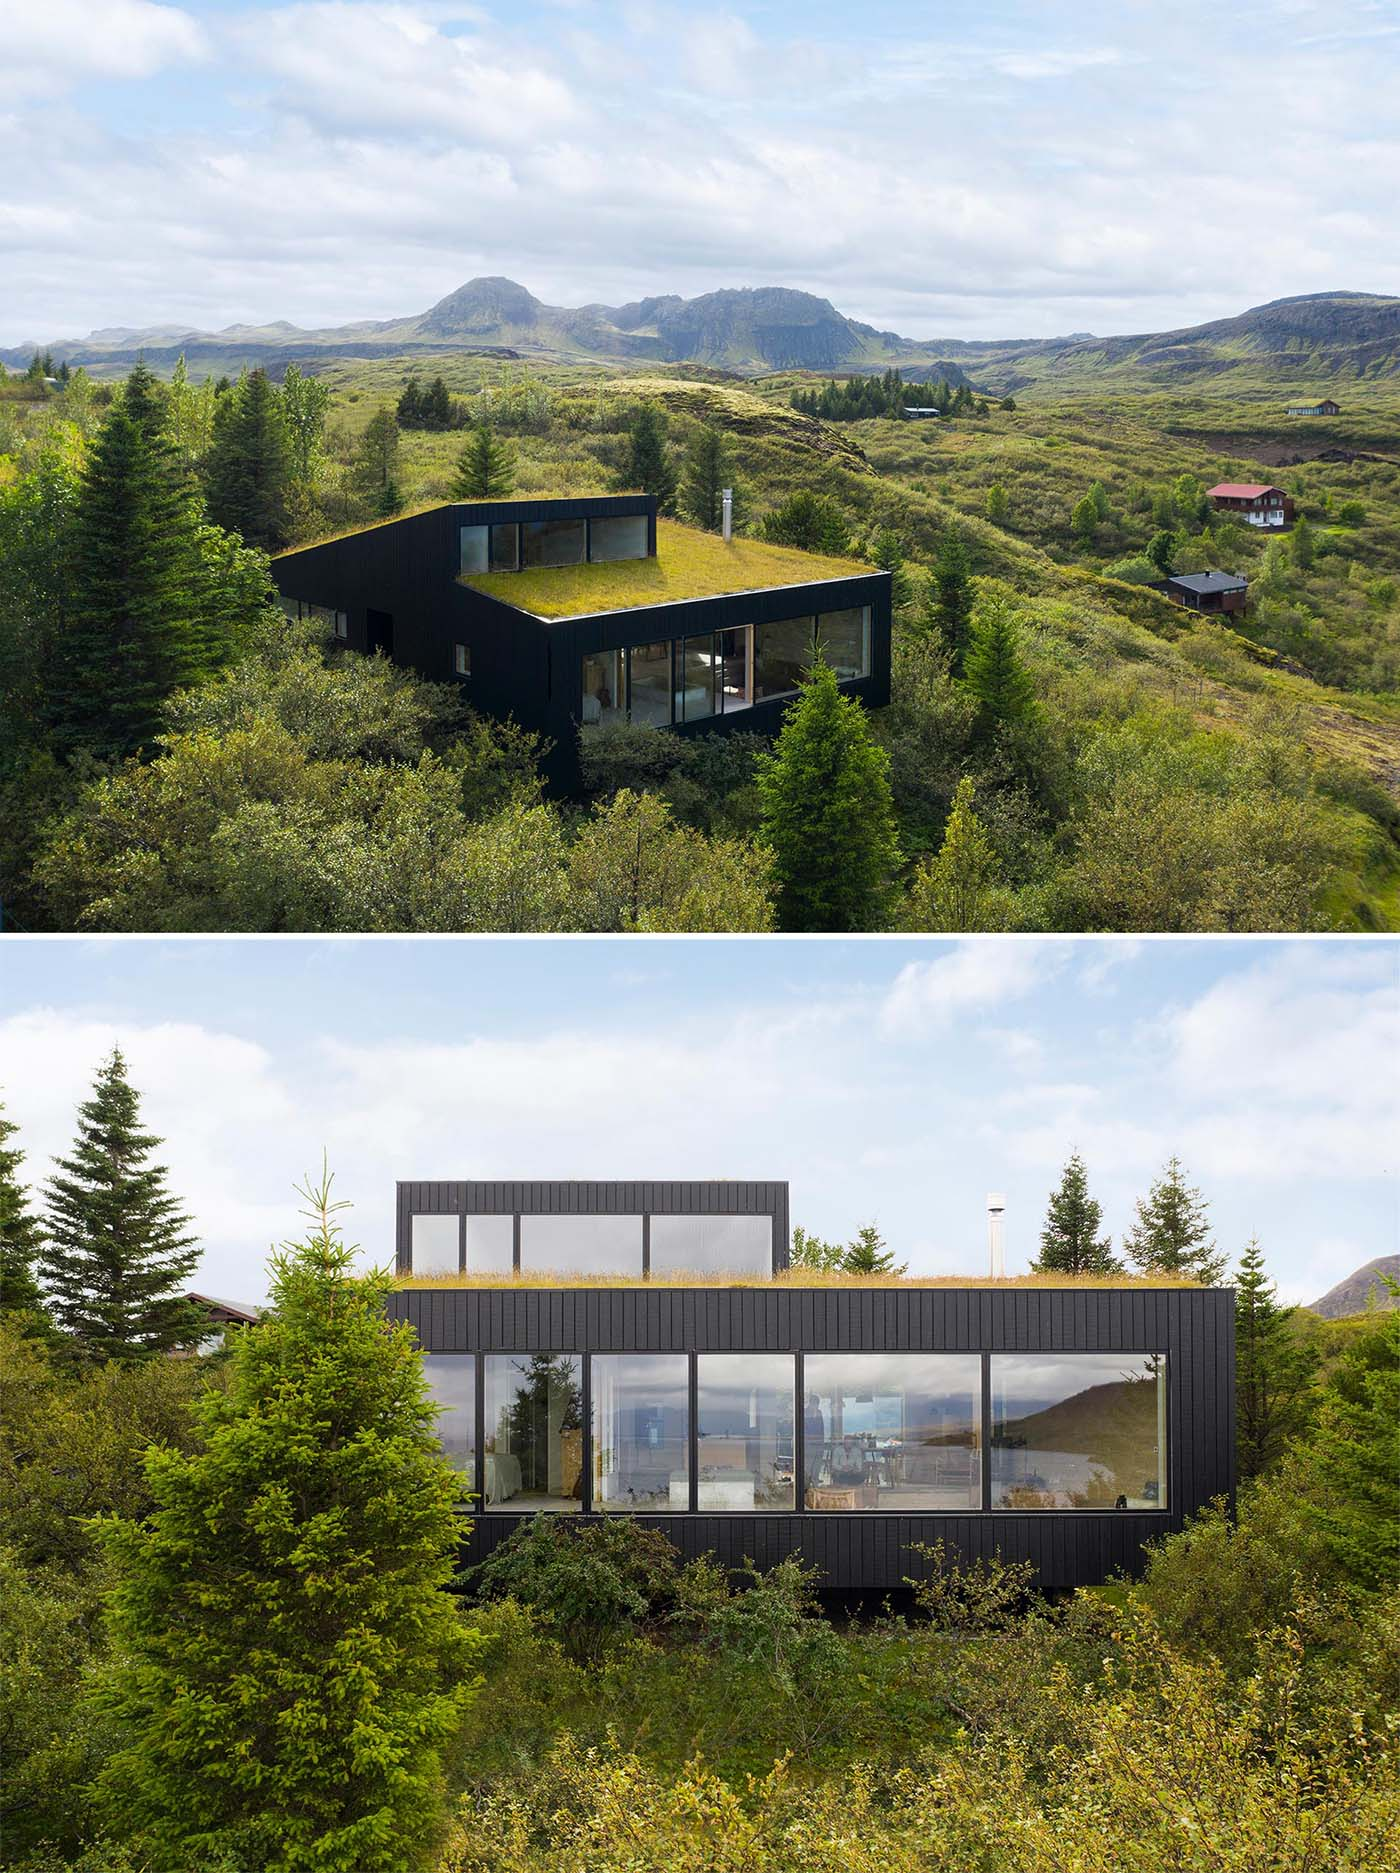 A modern home with blackened wood siding and a green roof.